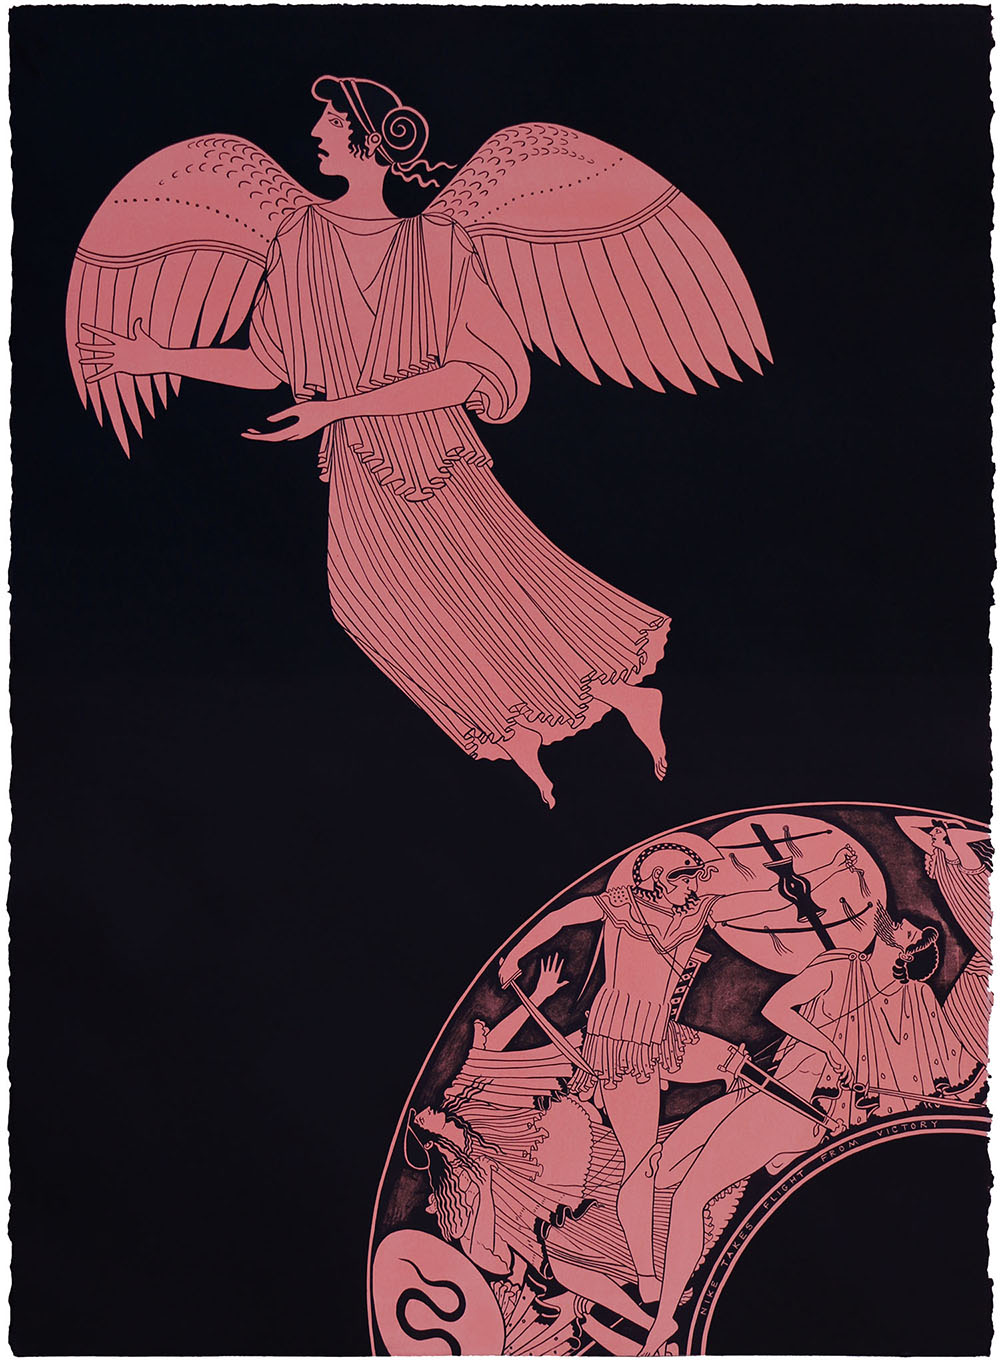 'Nike Takes Flight From Victory', 2018 560 x 760 x 50mm. Lithograph, Edition of 24.